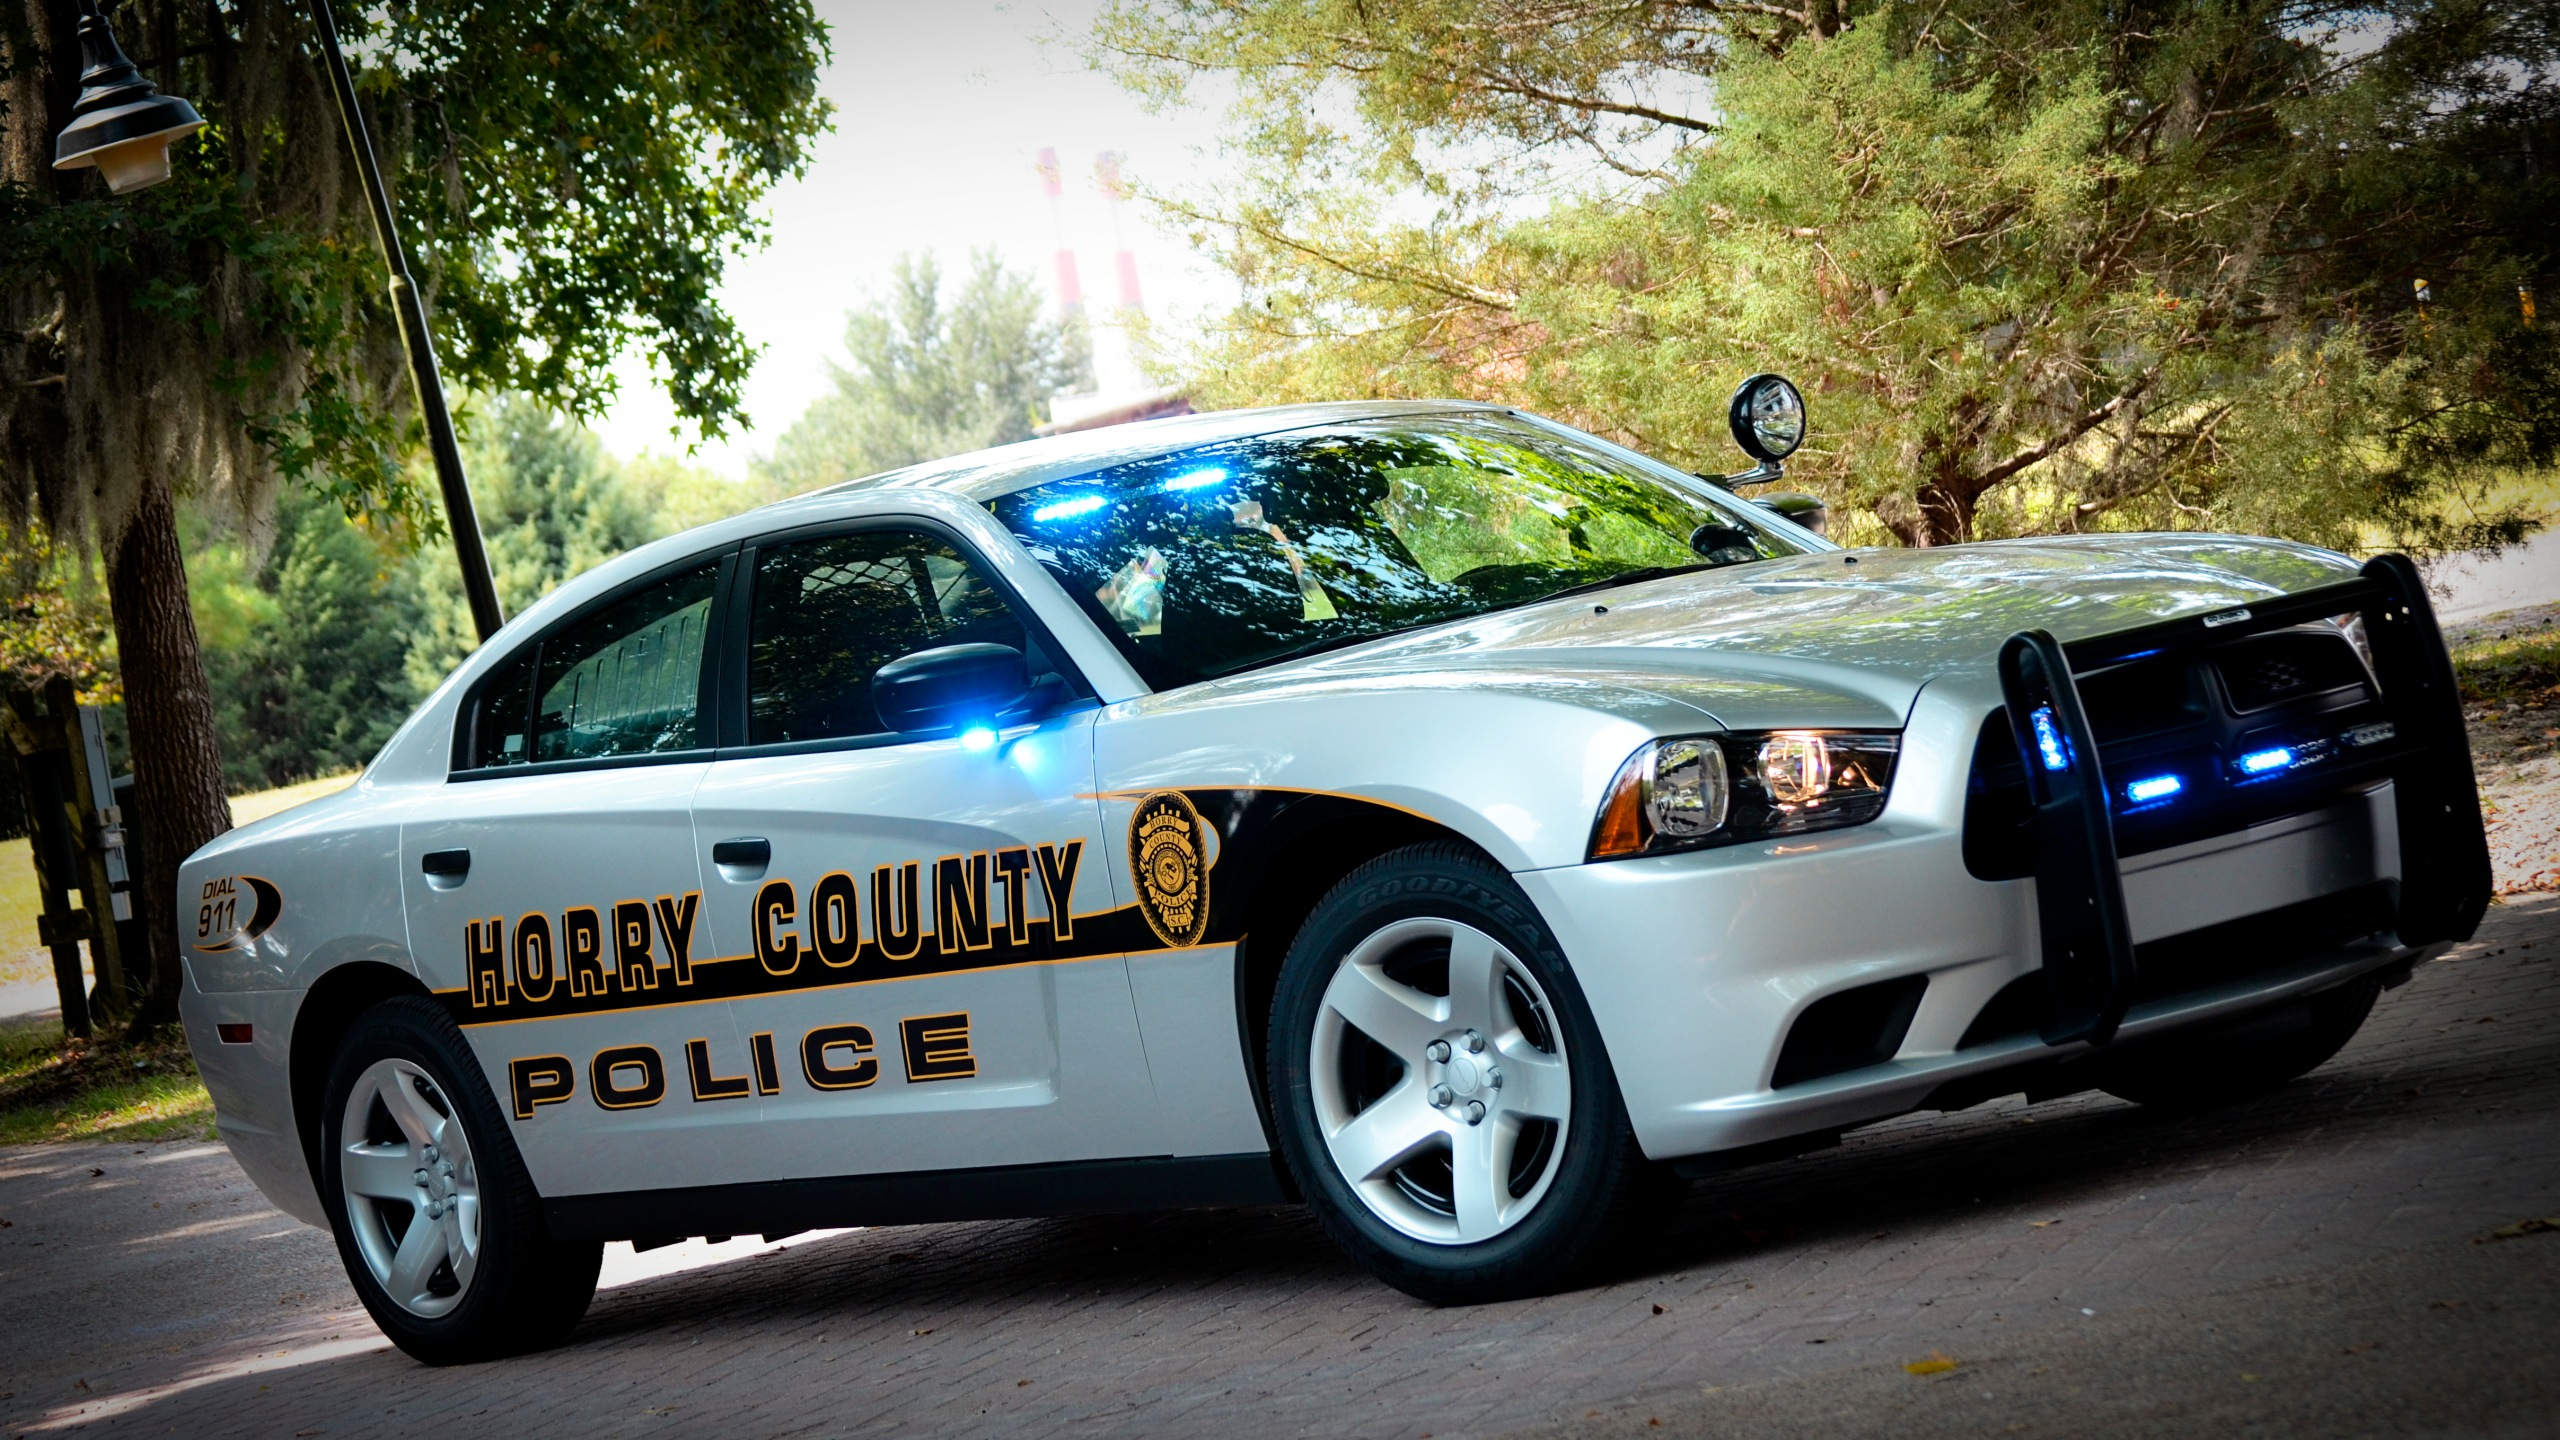 Horry County police car1_438486